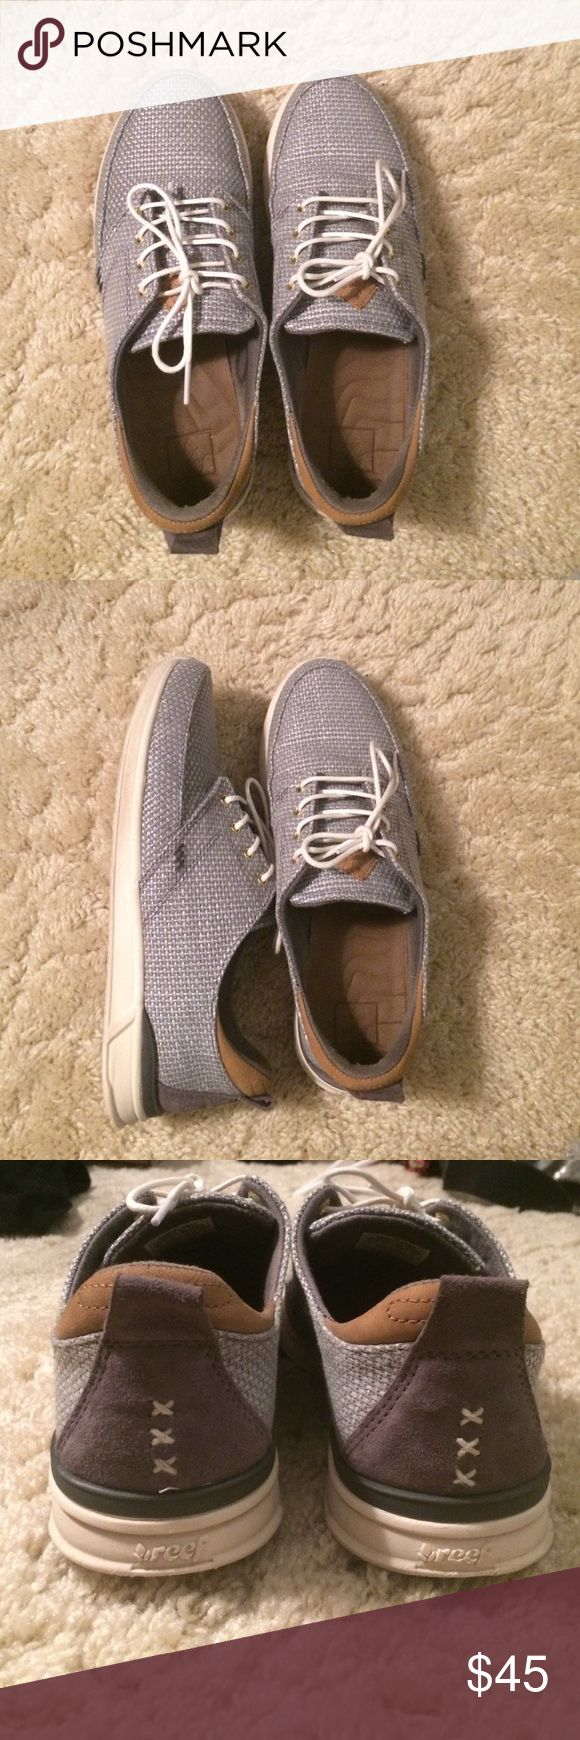 Women's Reef Shoes Super comfy- bought last summer only worn a couple times Reef Shoes Sneakers